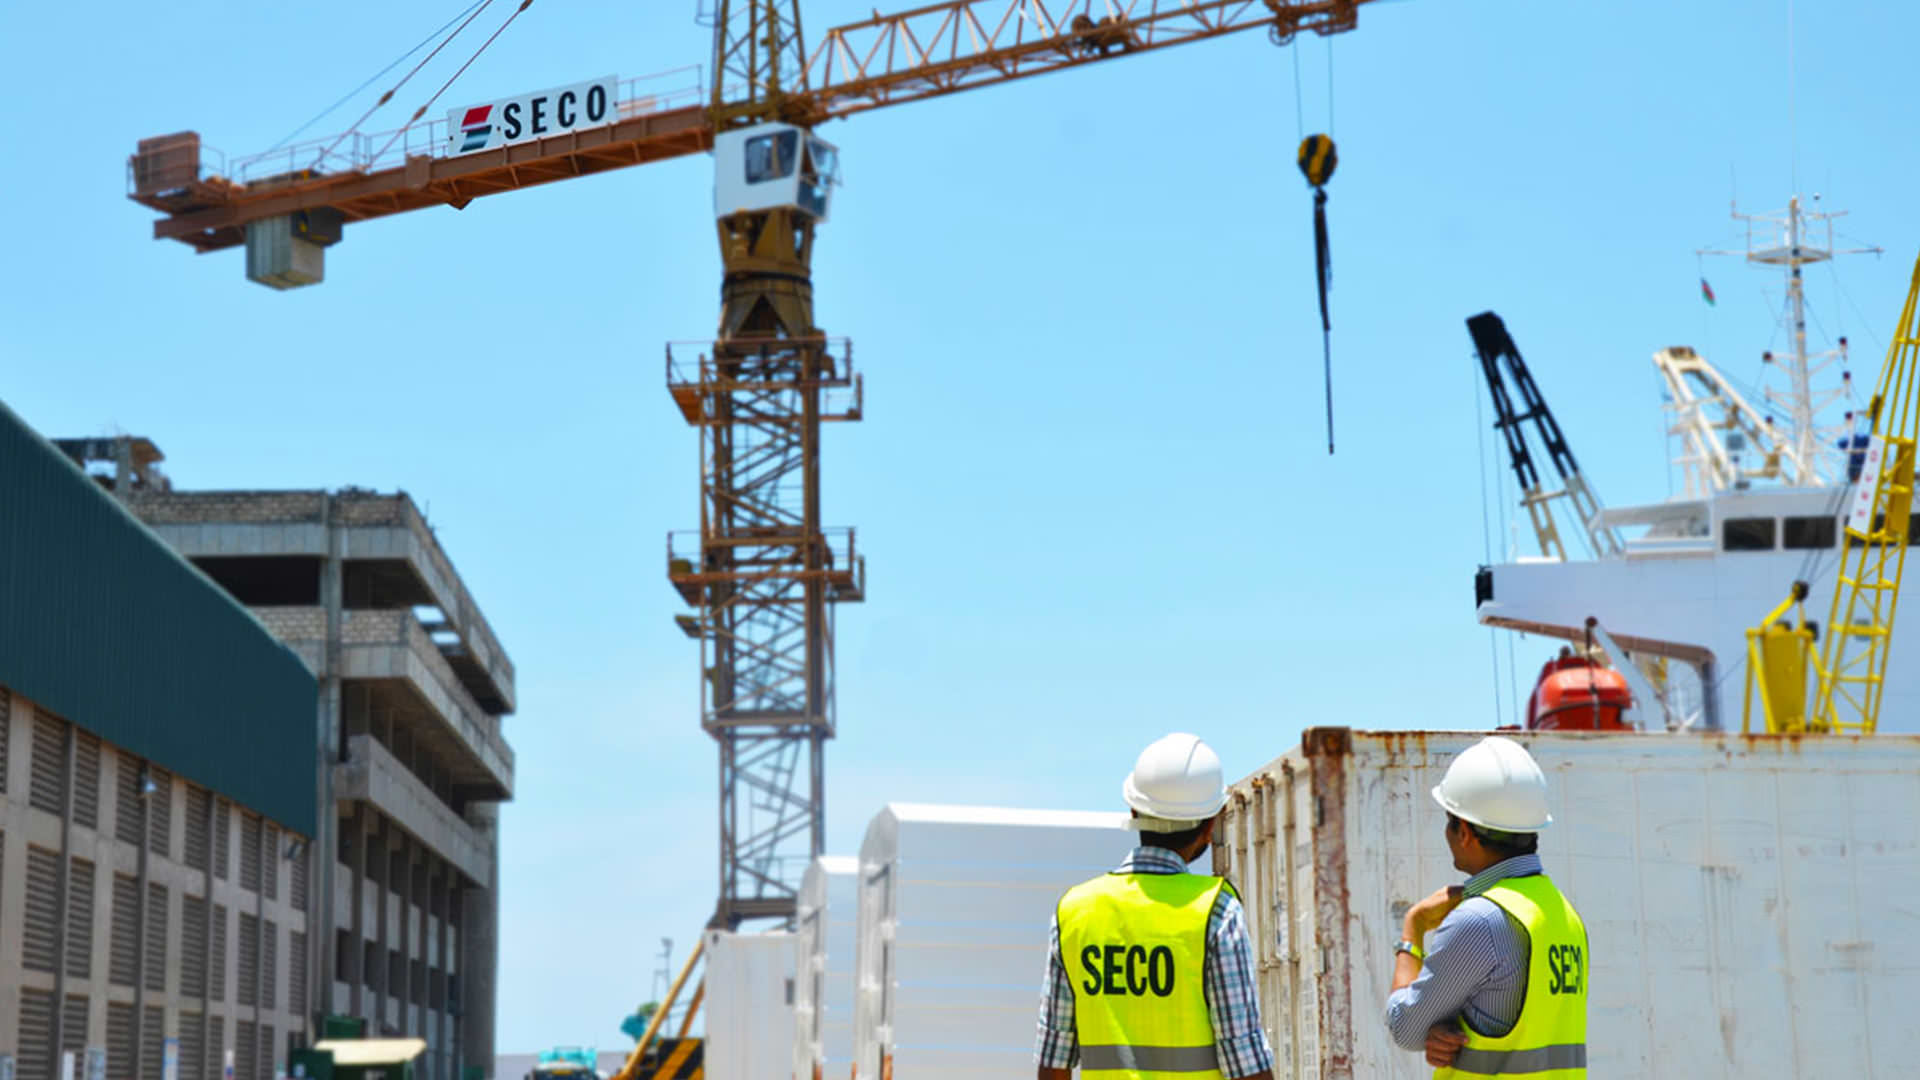 SECO-HEALTH, SAFETY & ENVIRONMENT